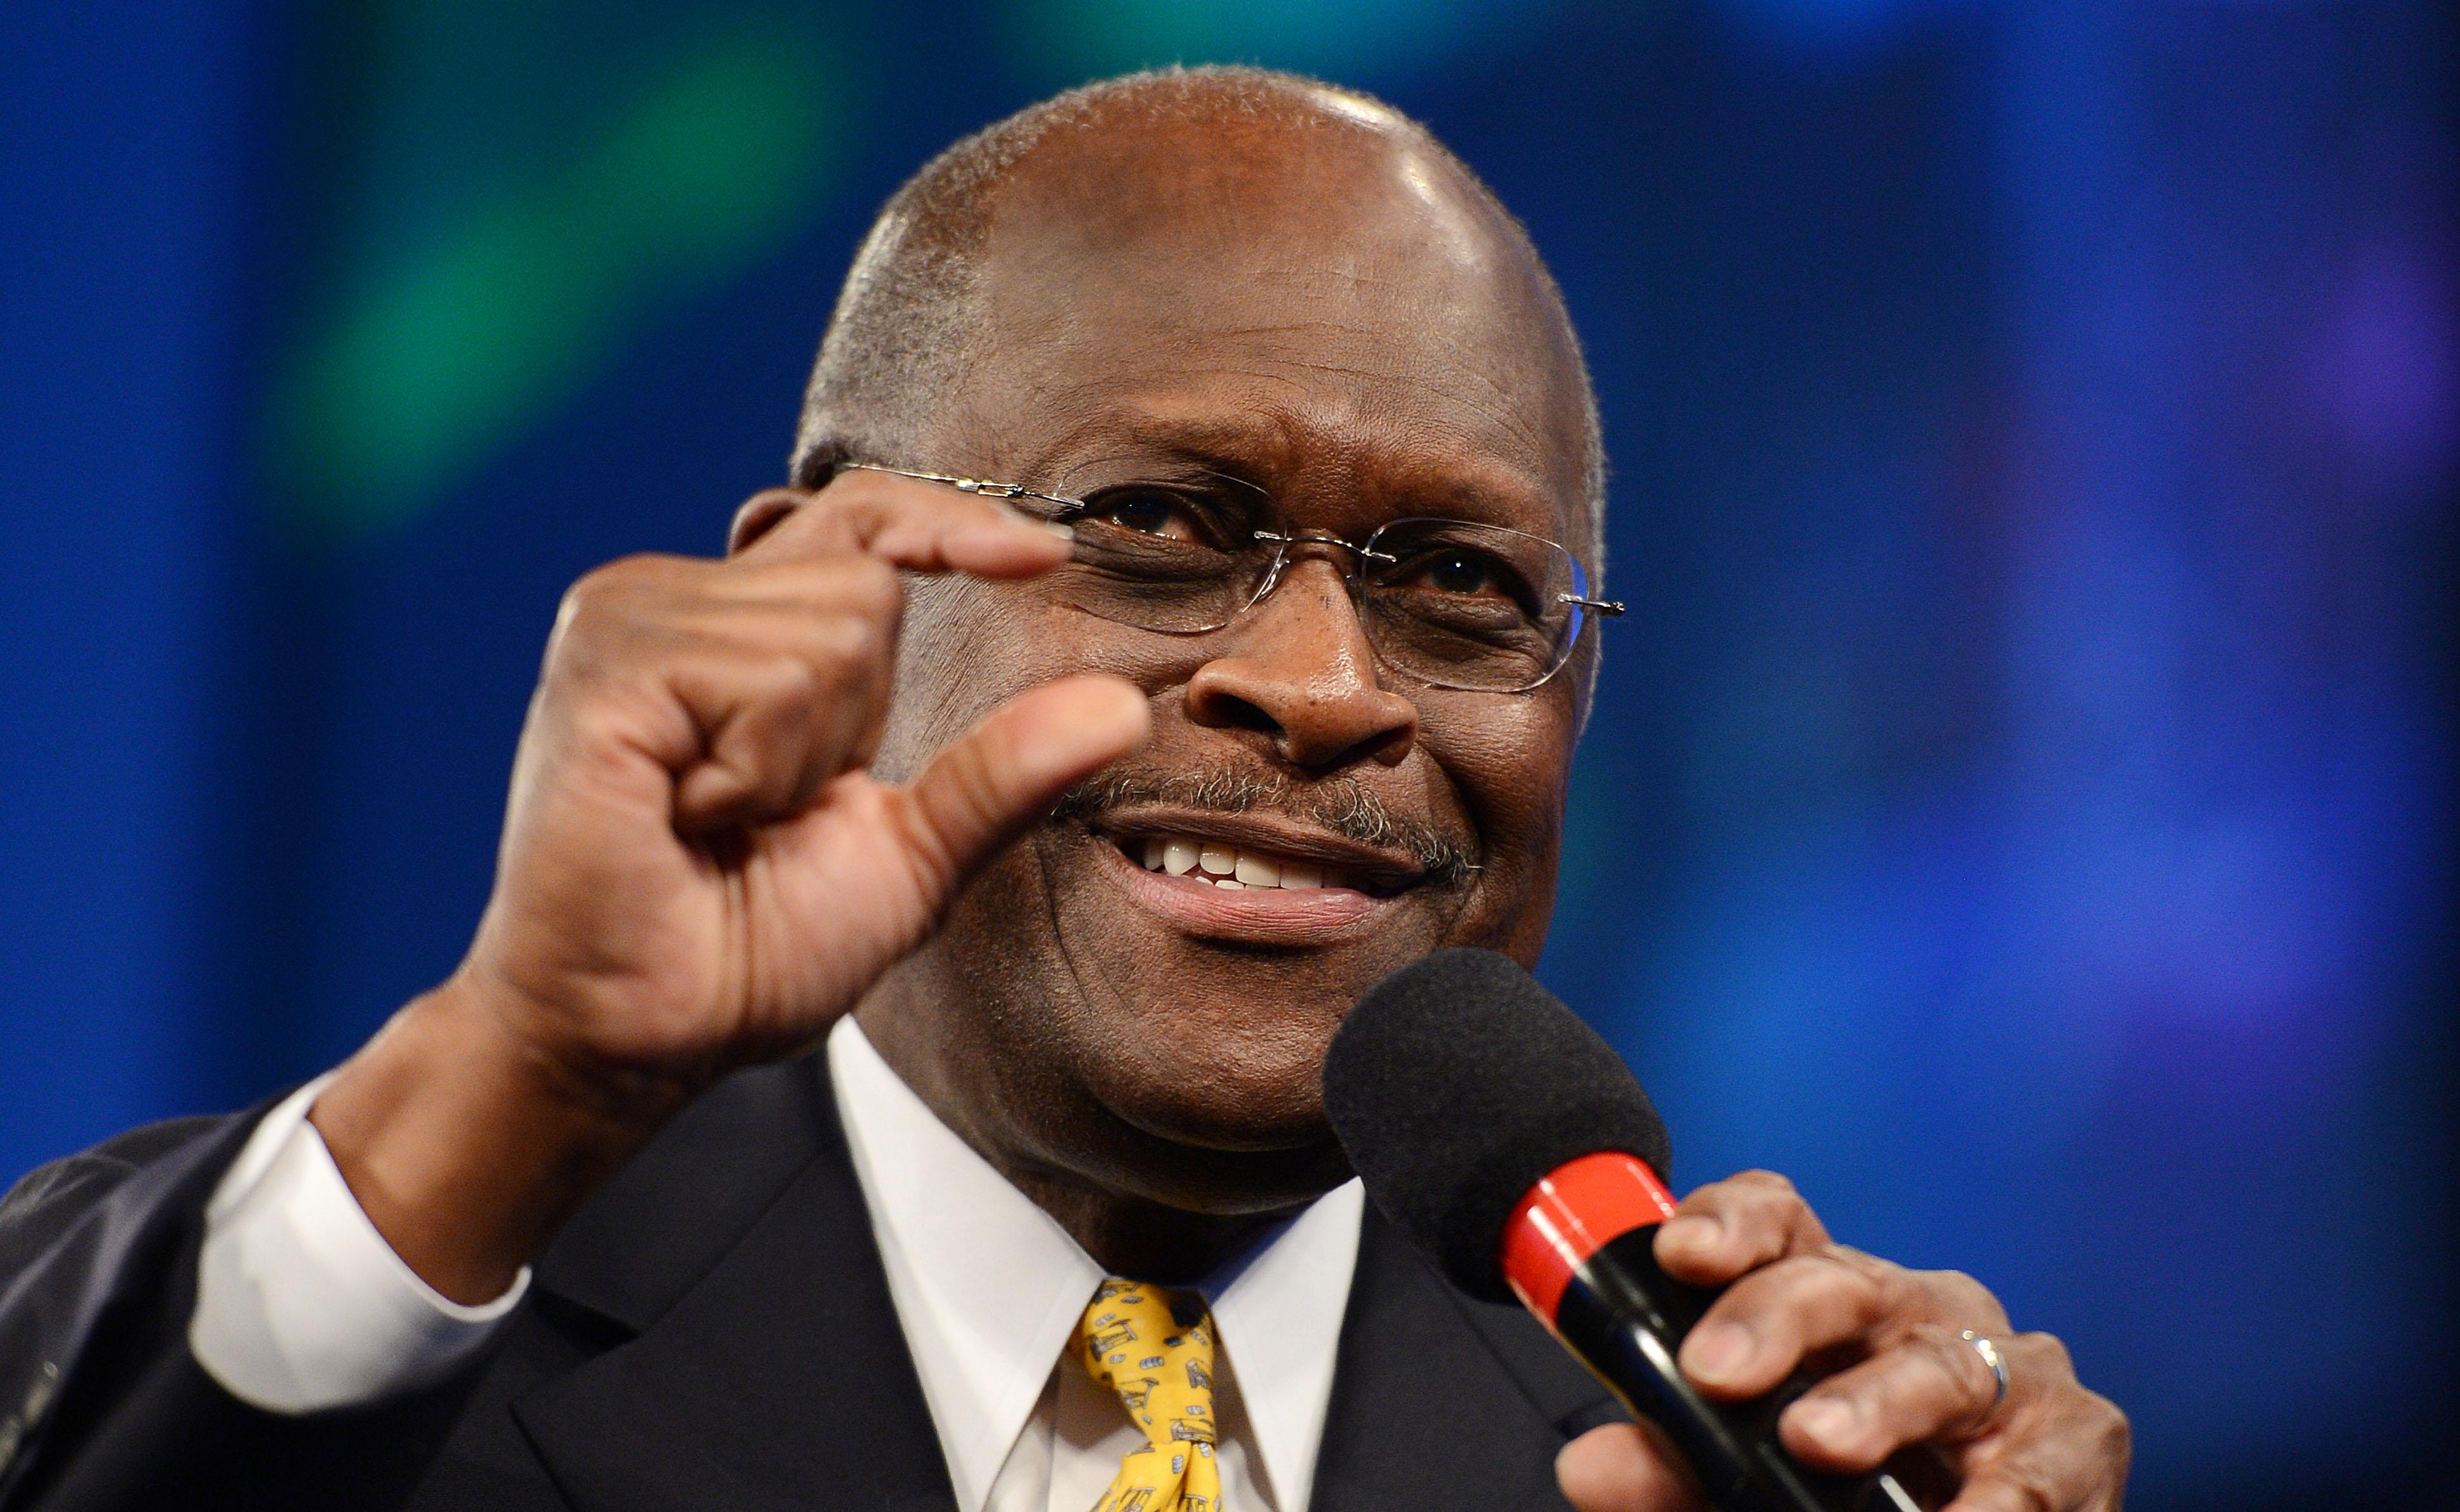 Herman Cain holds a microphone and gestures with his other hand.